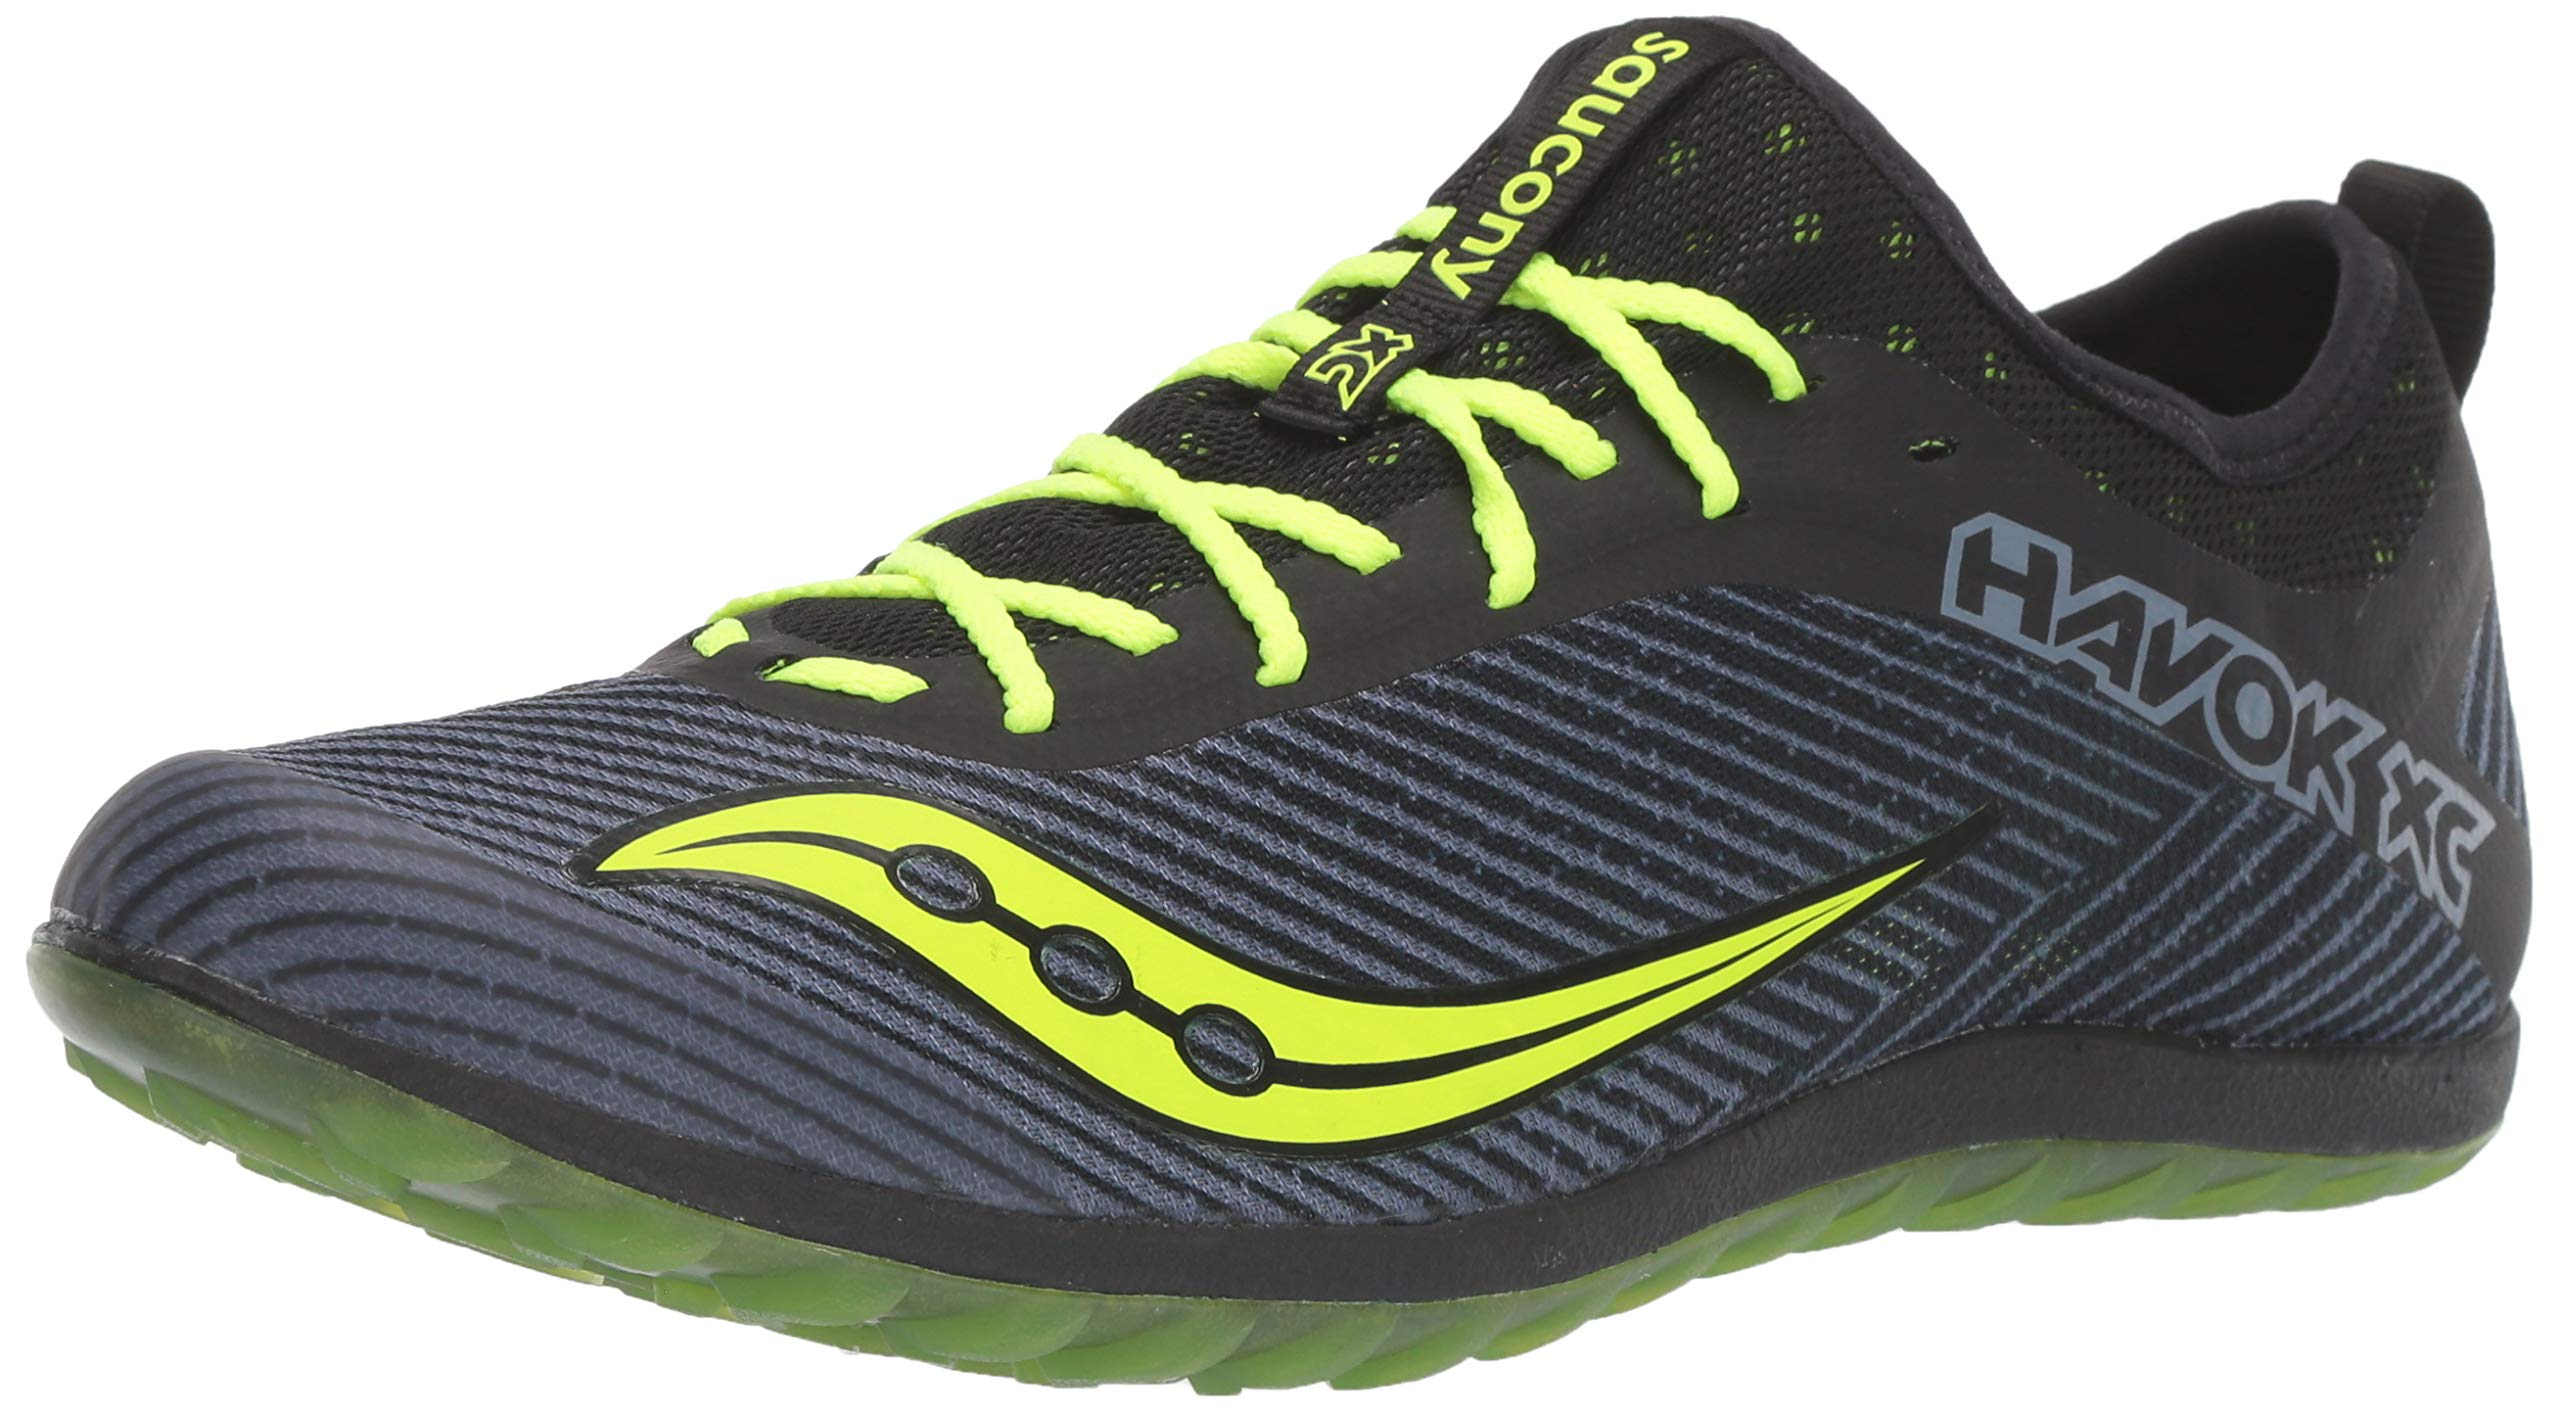 Saucony Men's Havok XC2 Flat Track and Field Shoe, Black/Citron, 8.5 Medium US by Saucony